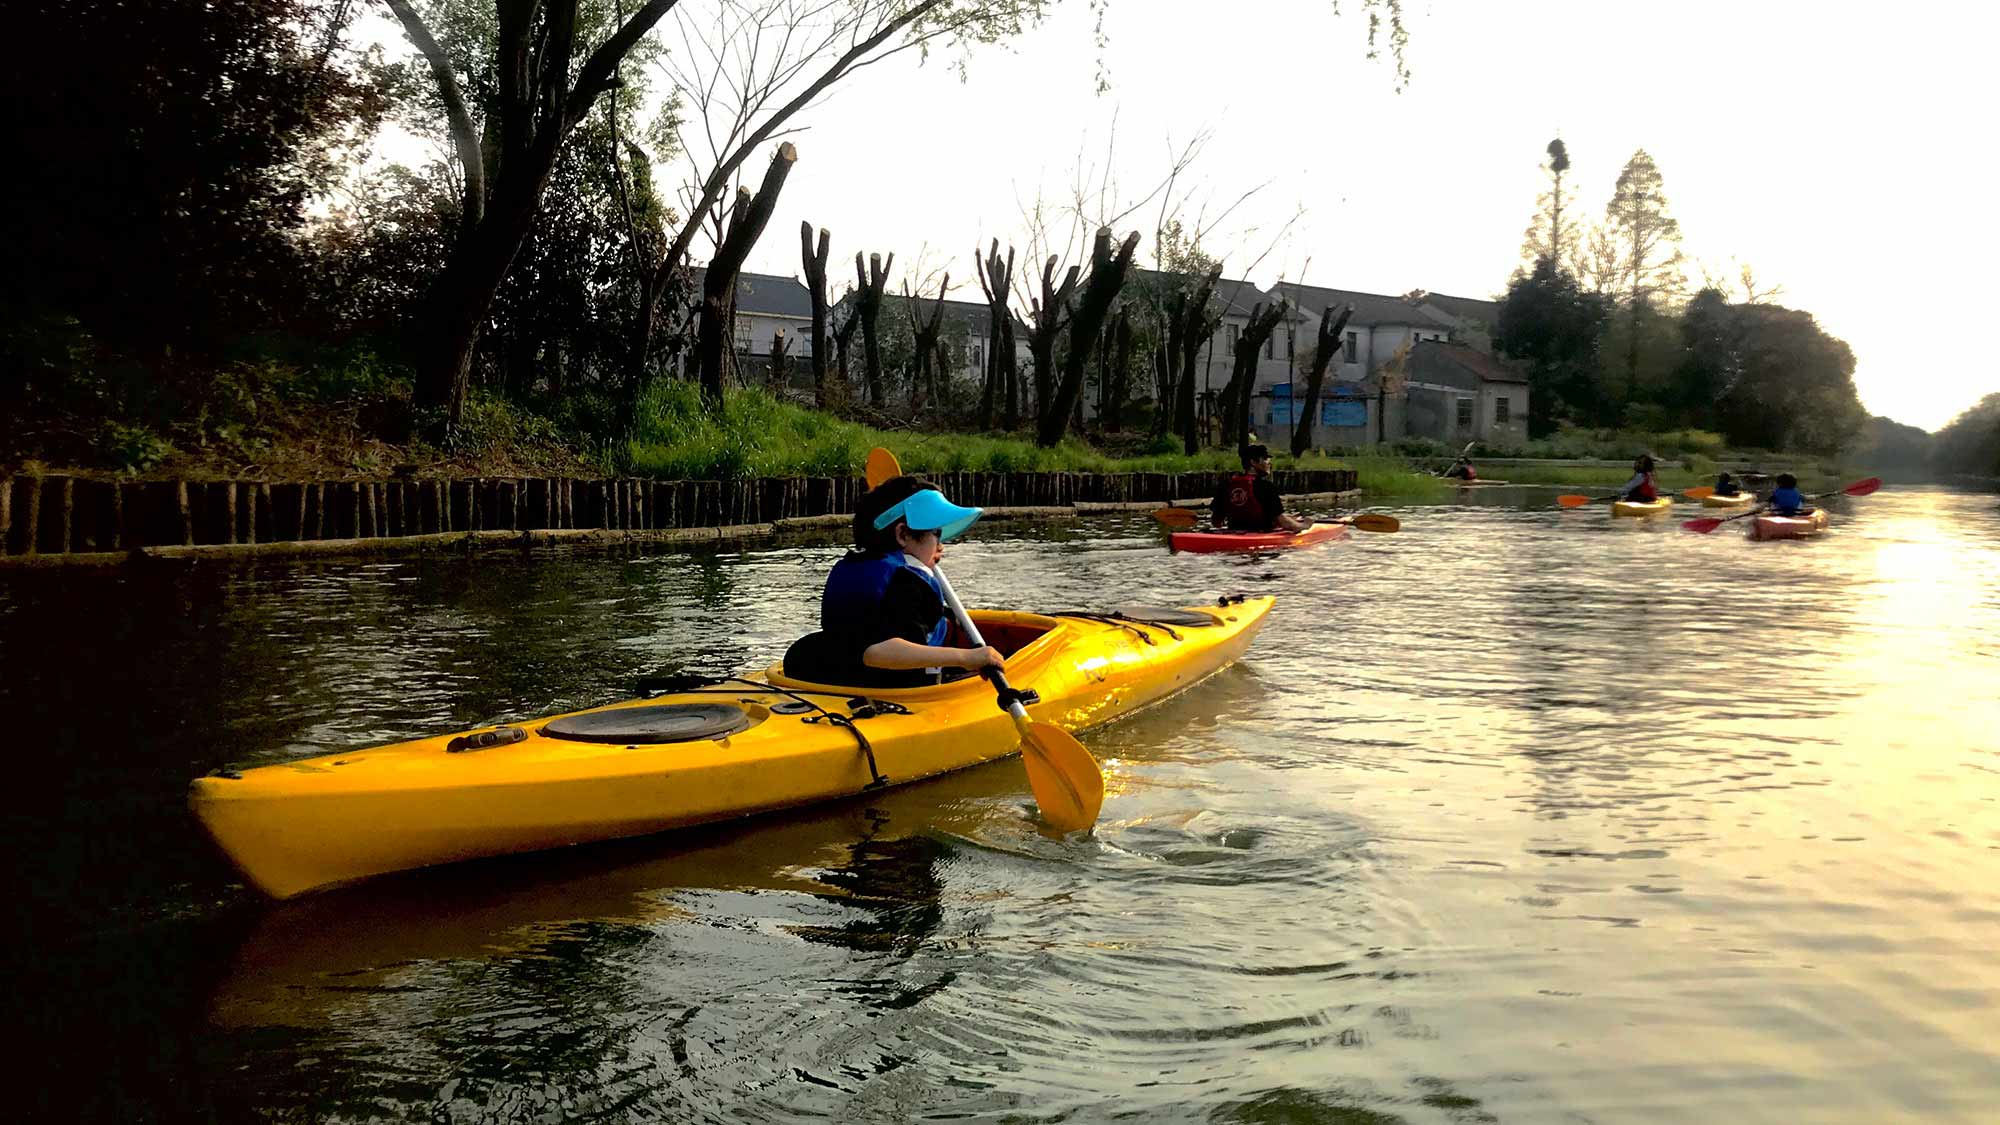 kayaking in nature, nature guide, green steps